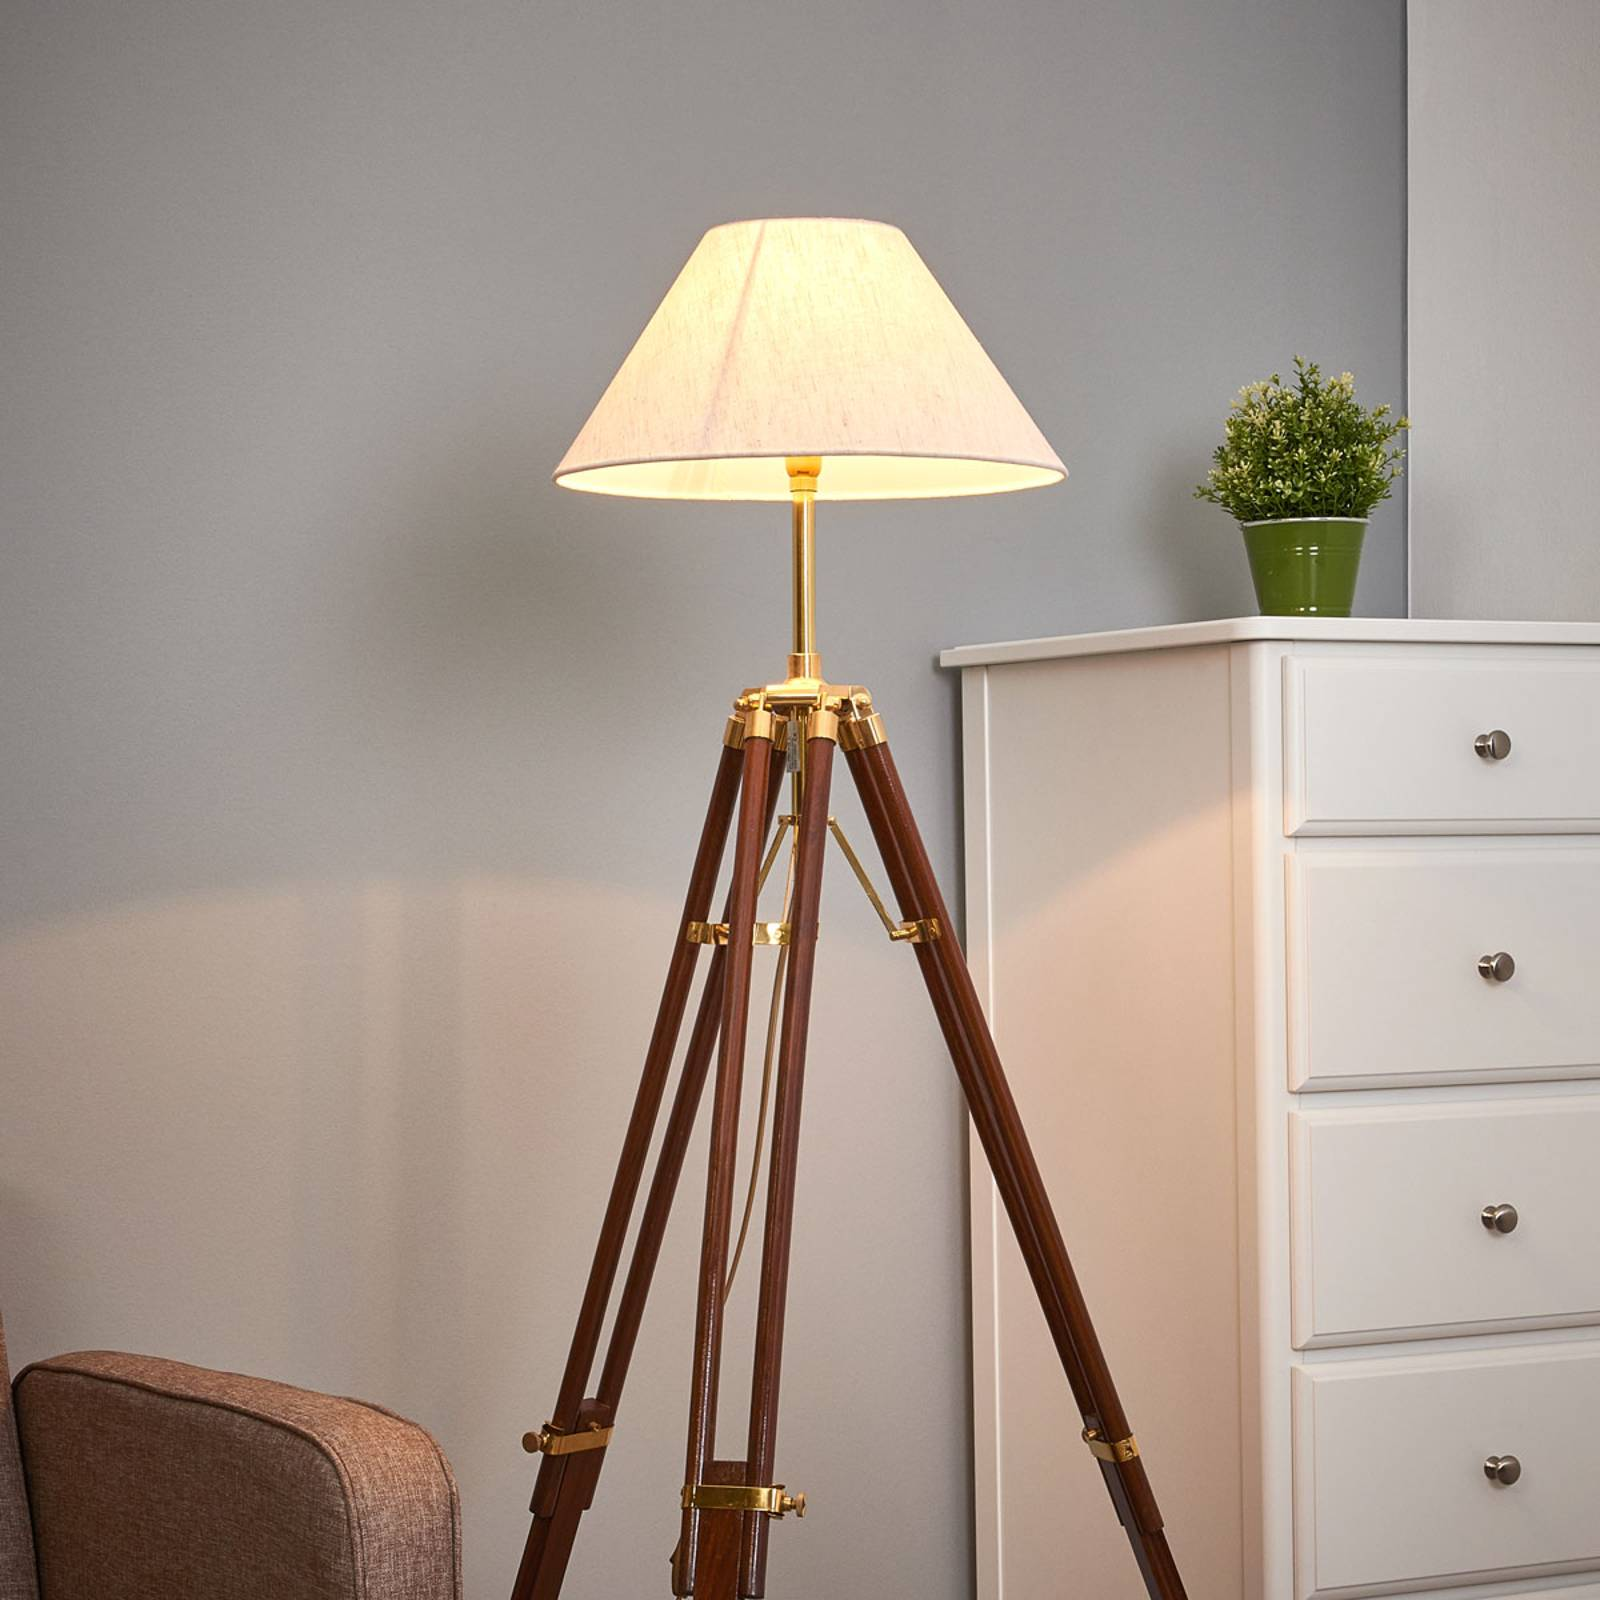 Magnificent floor lamp STATIV with white lampshade from SEA-Club